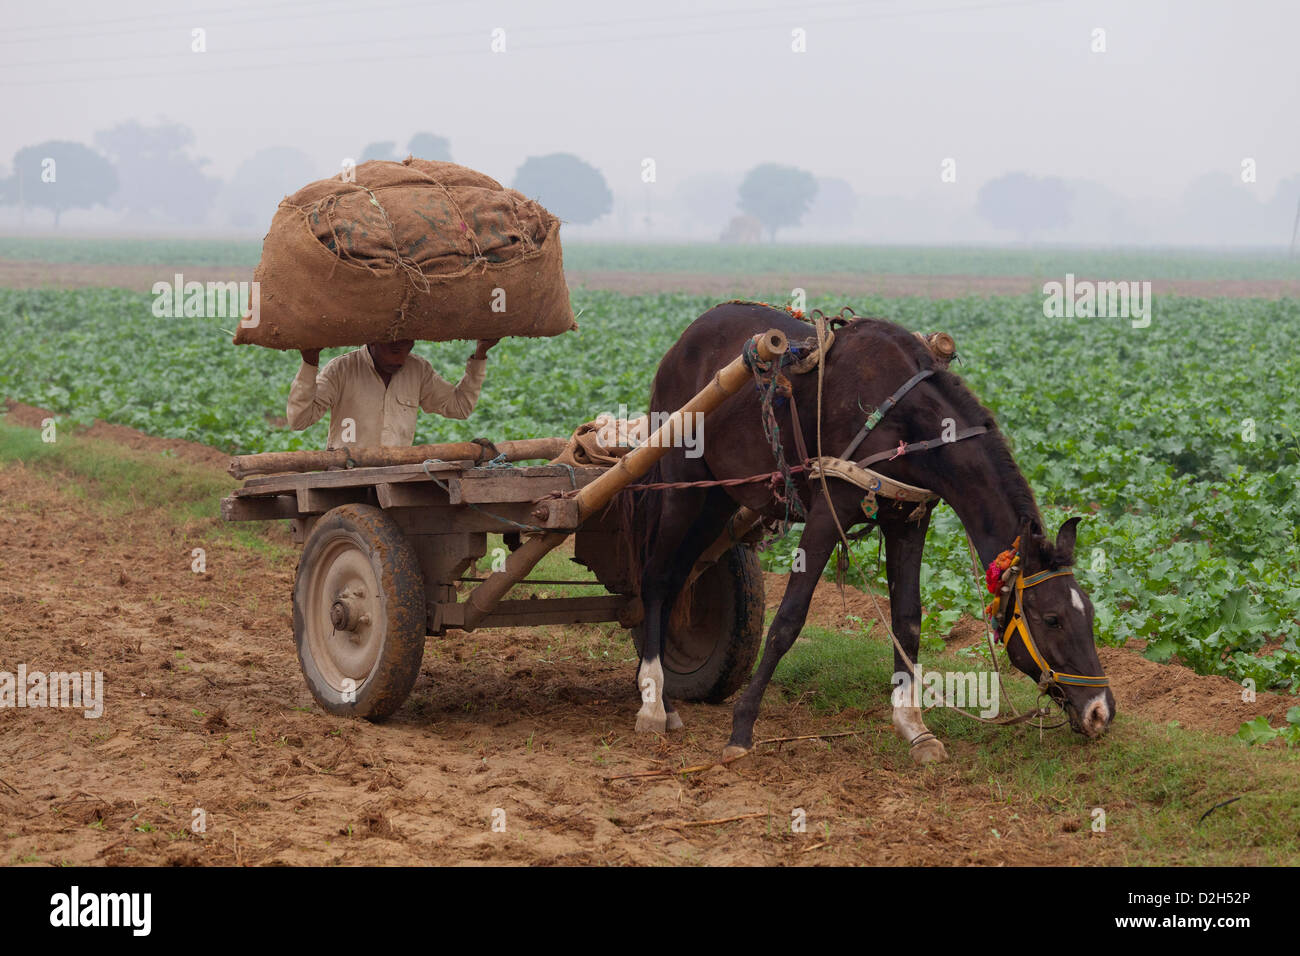 india, Uttar Pradesh, farmer carrying hessian sack full of crop to horse and cart in field - Stock Image